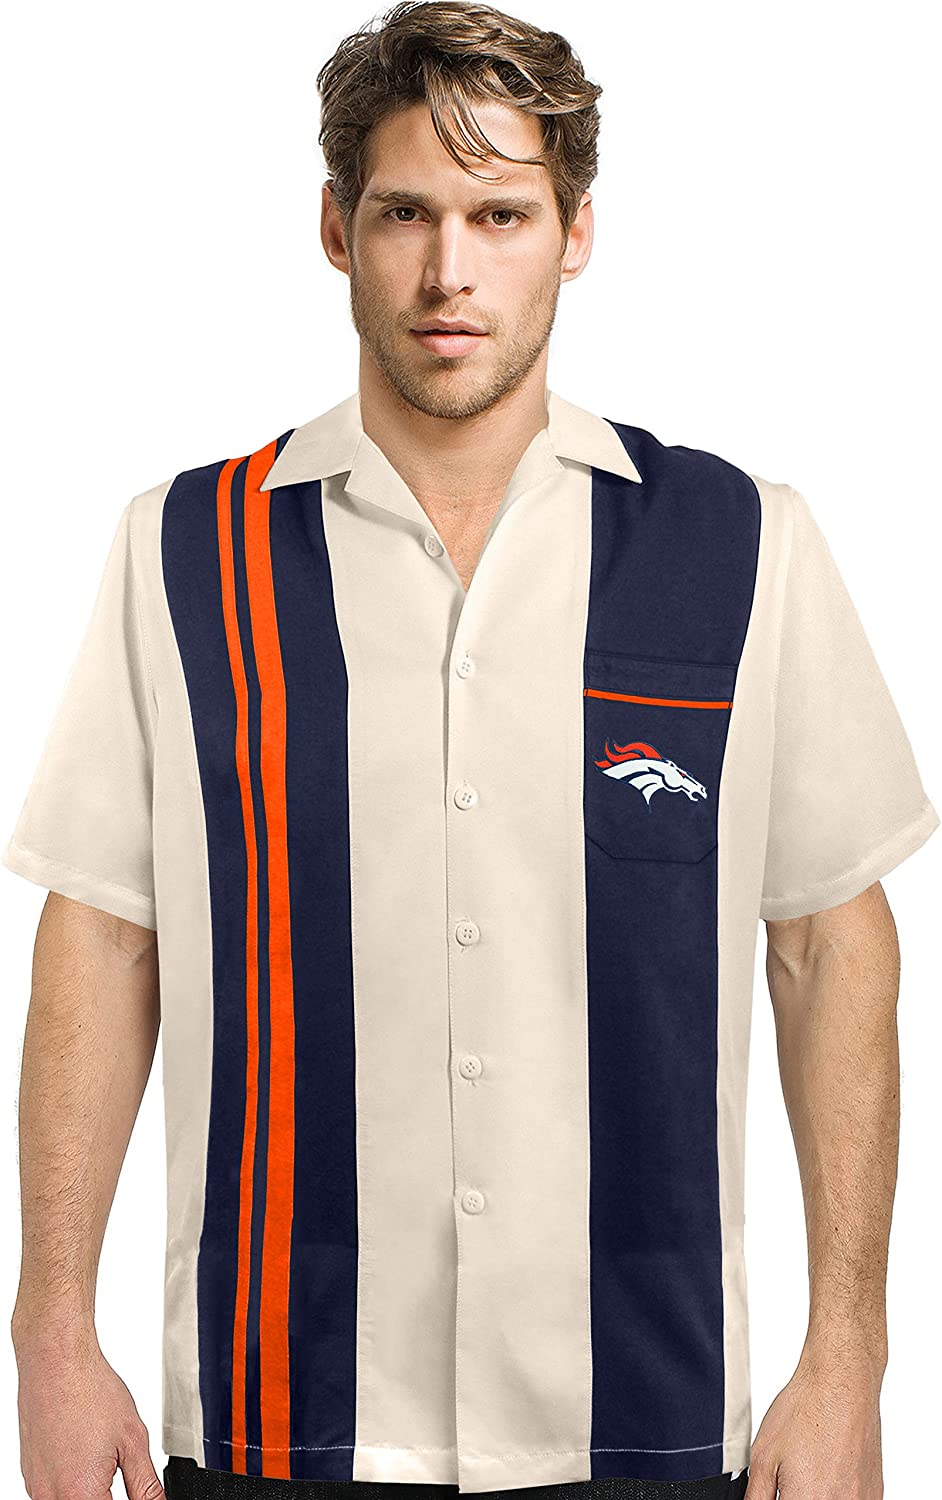 Littlearth NFL Spare Bowling Shirt